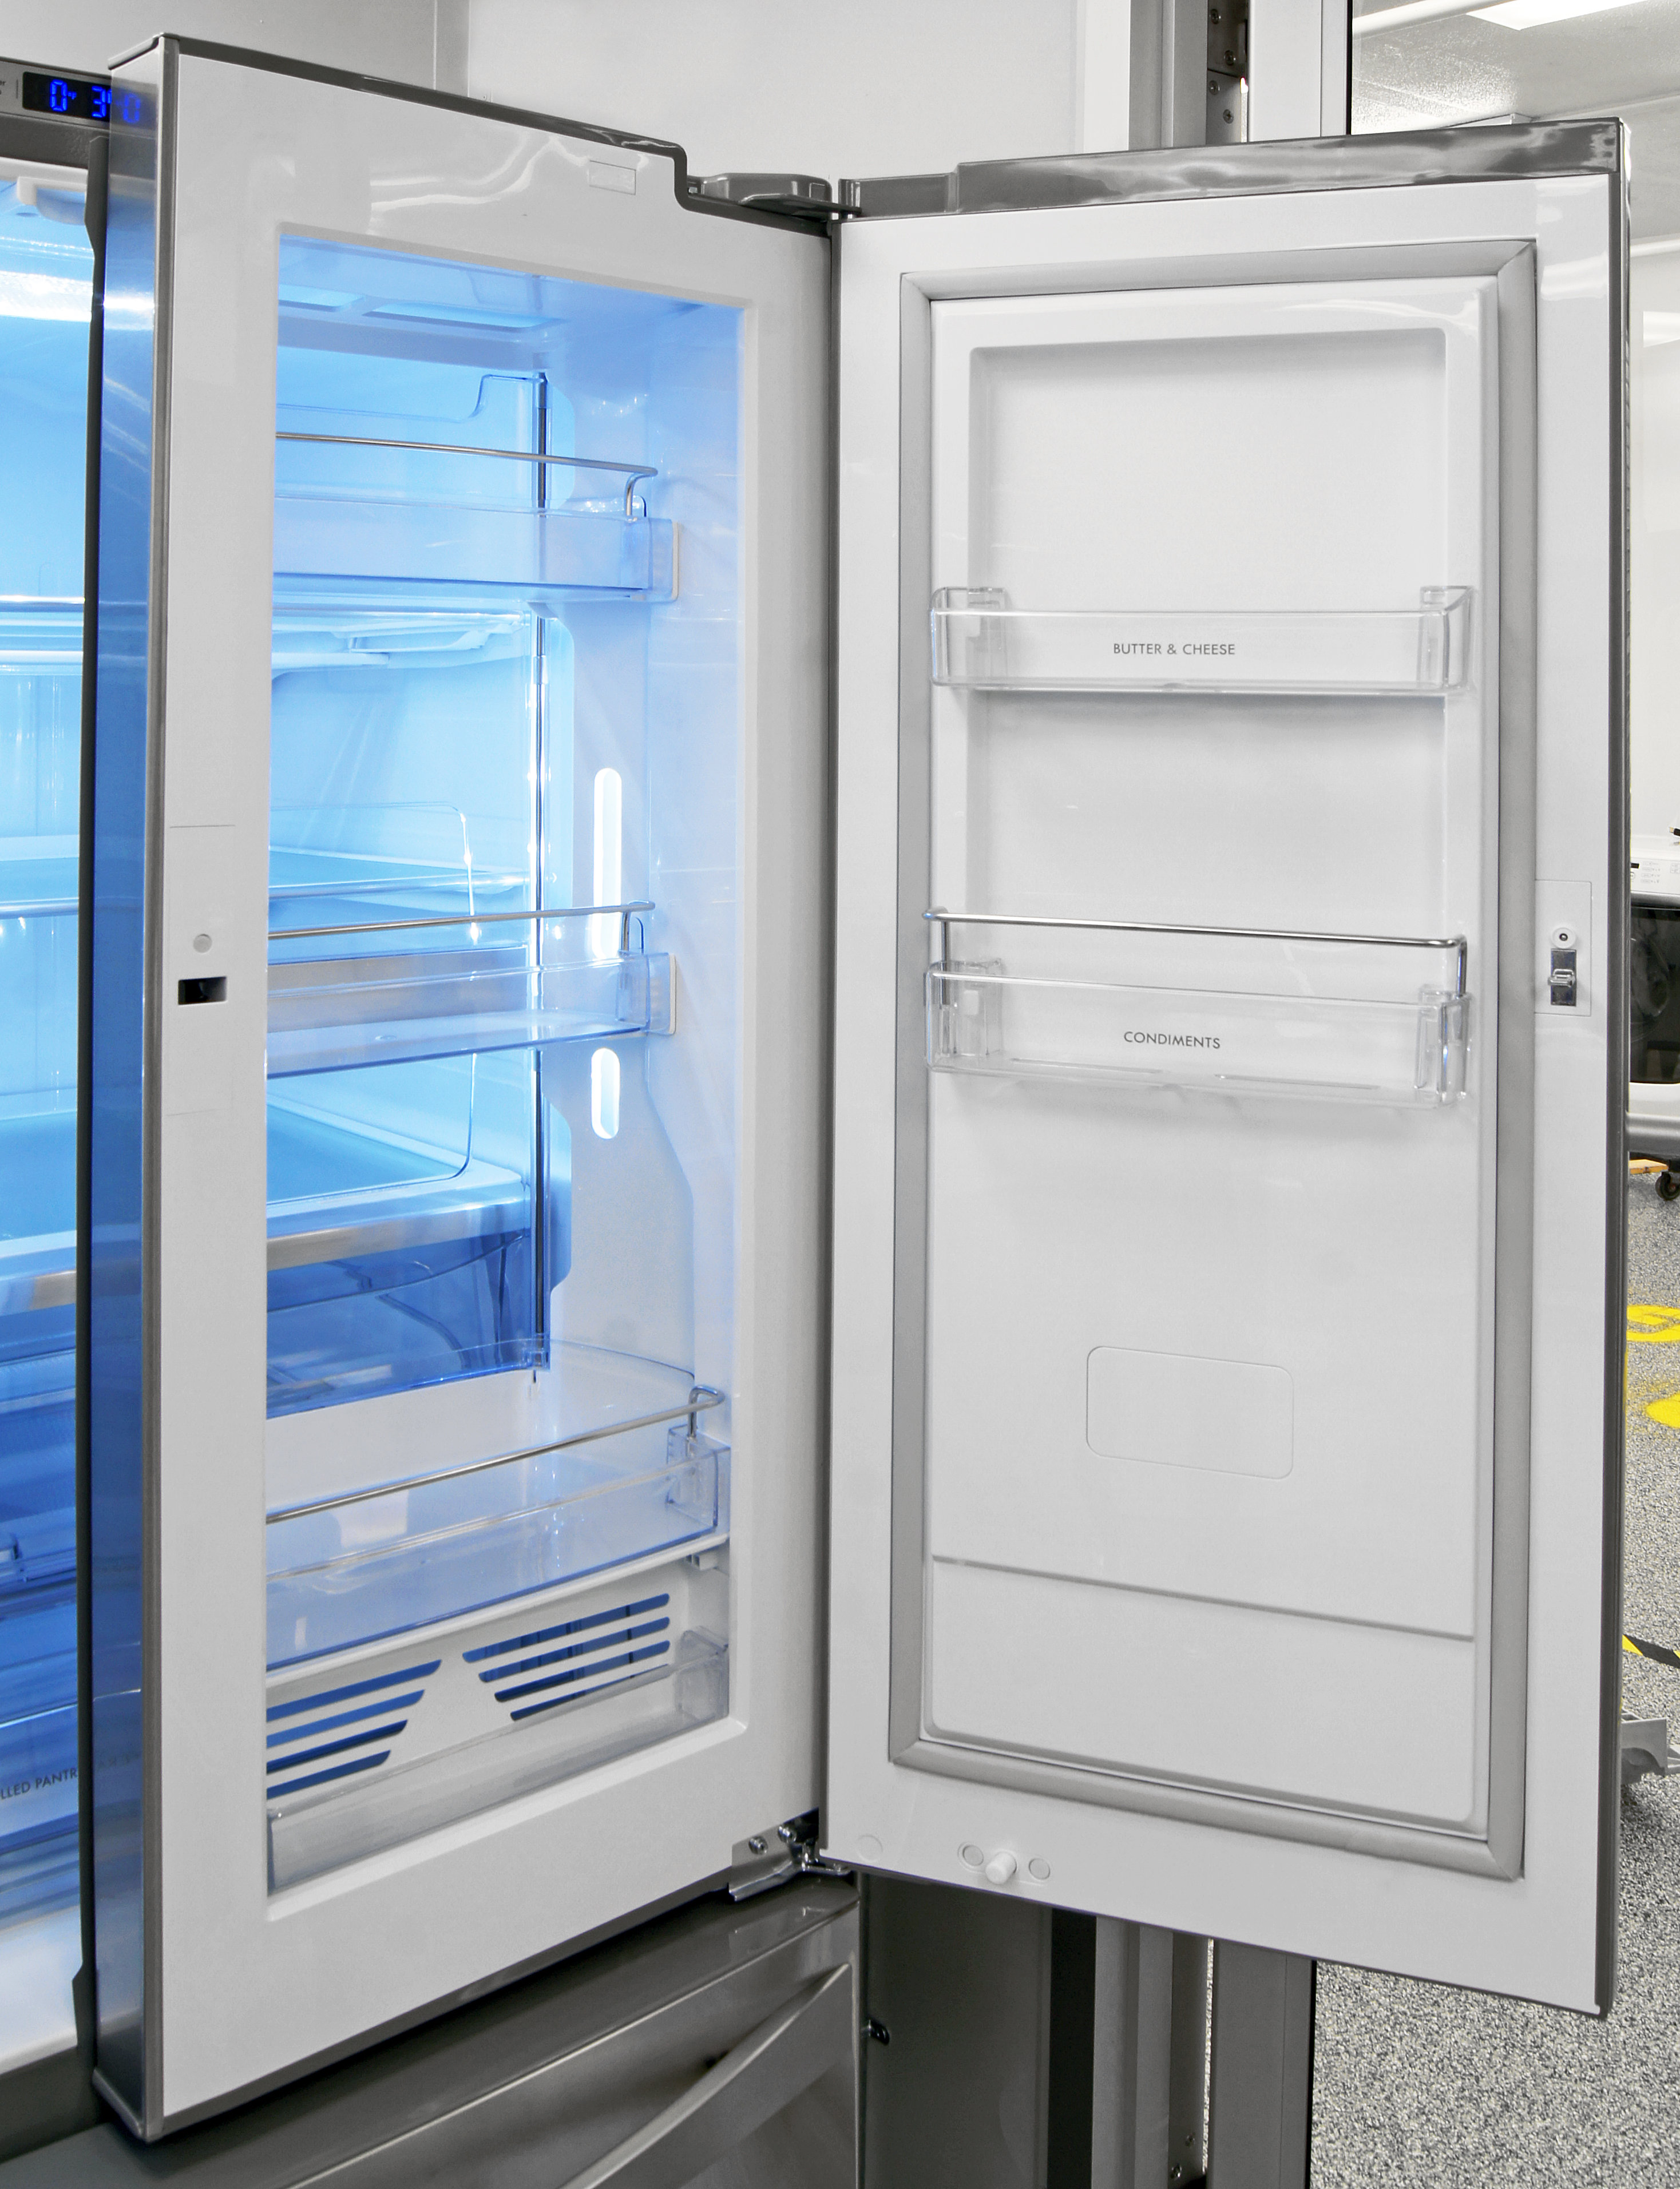 The Kenmore Elite 74033's door-in-door compartment contains shelves of varying heights, but none of them are adjustable.